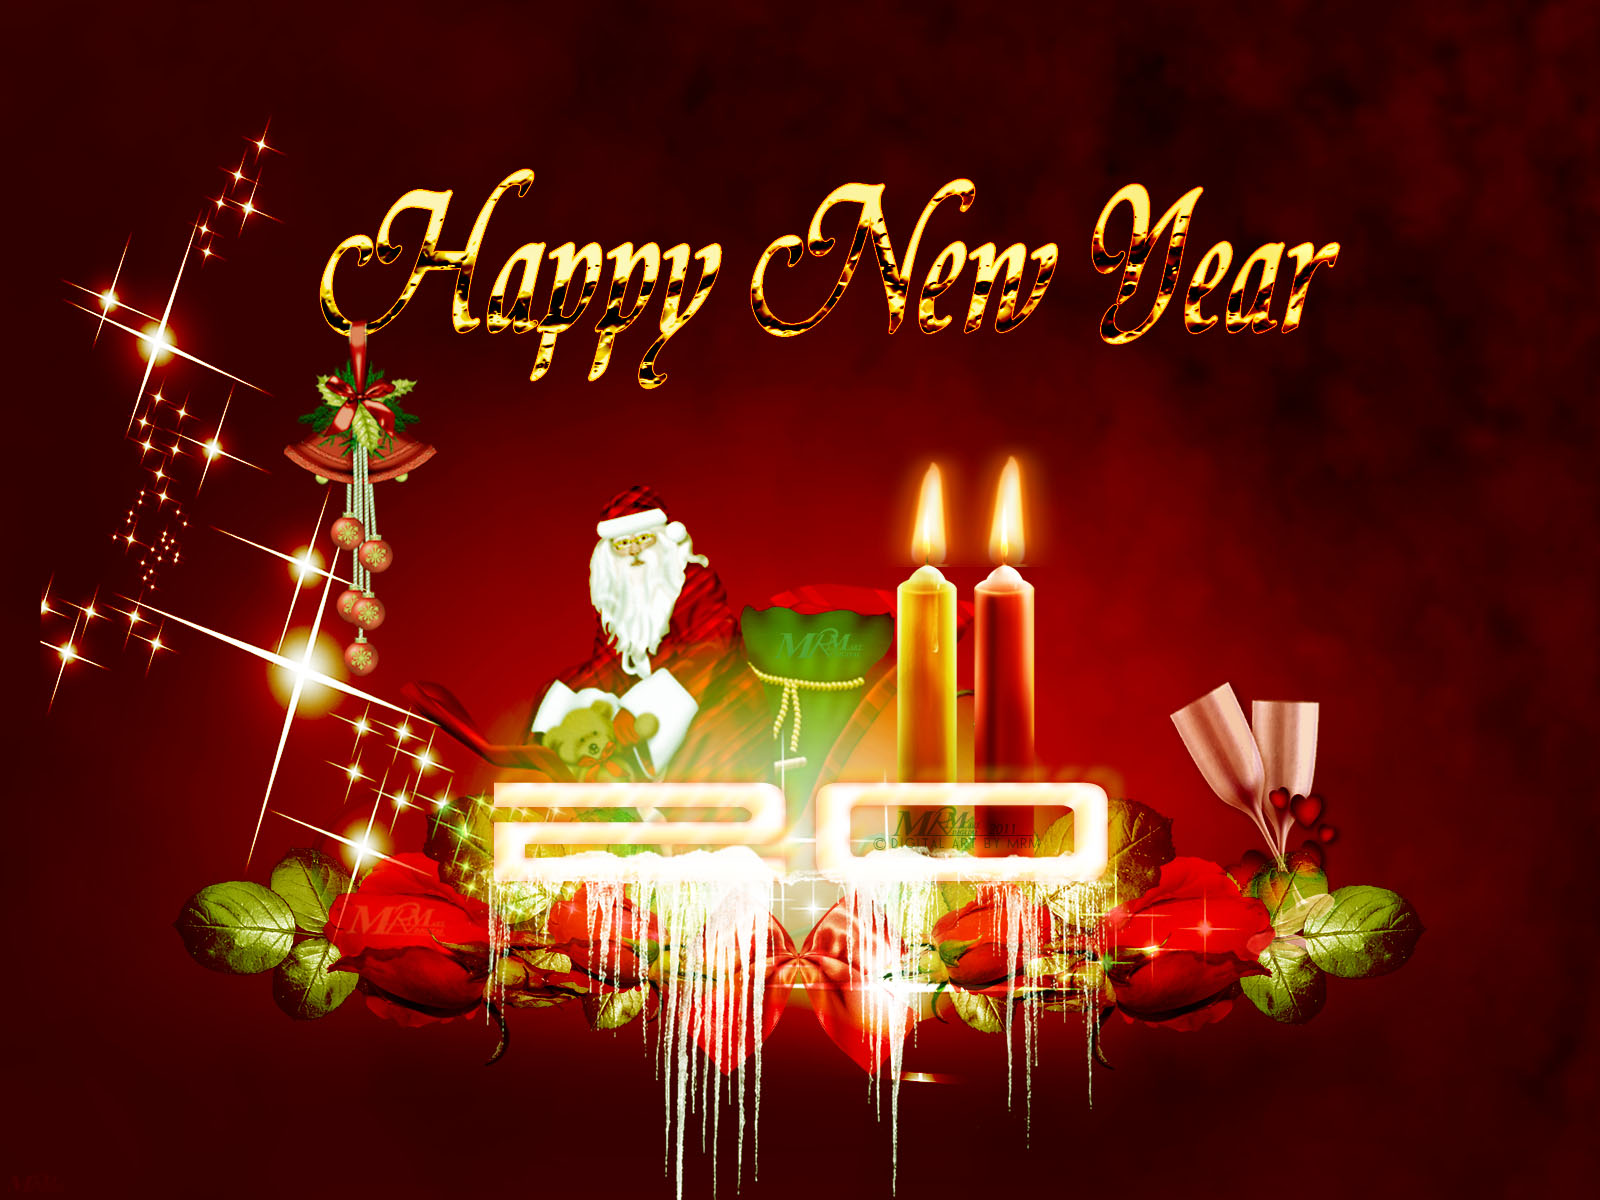 Happy new year 2014 wallpapers hd happy new year greeting cards happy new year greeting cards wallpapers wishes kristyandbryce Images